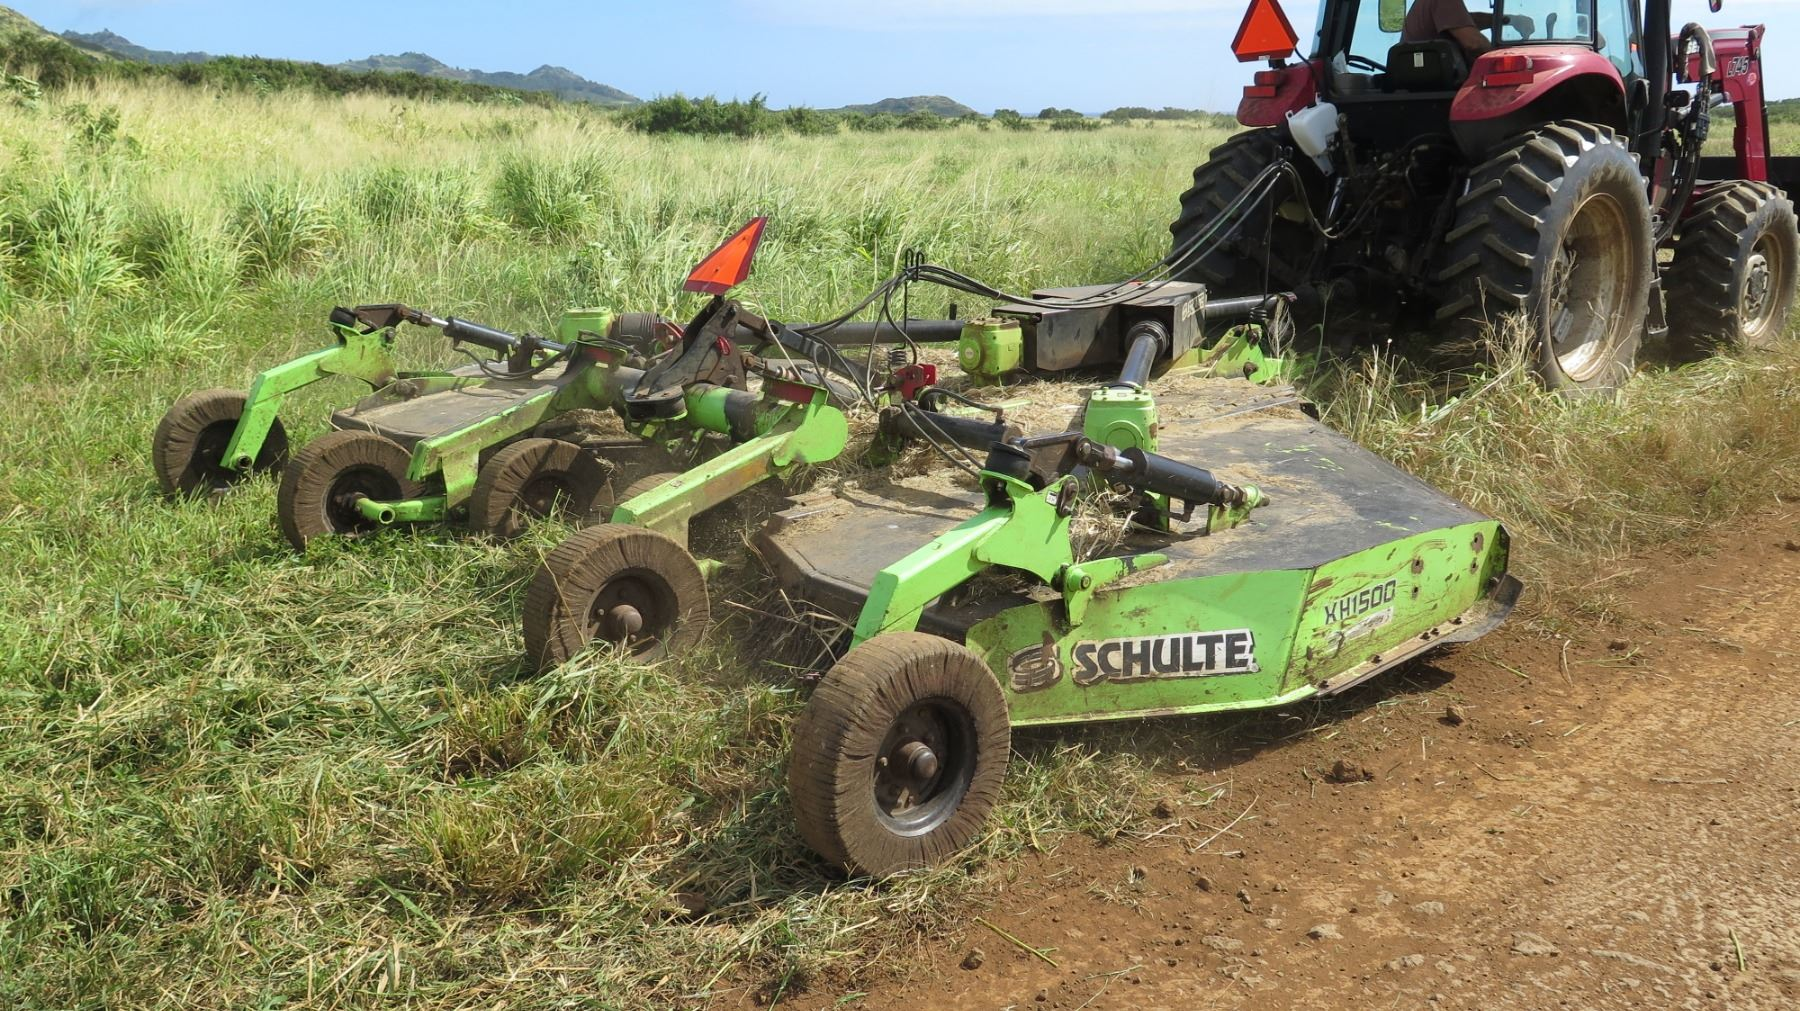 Schulte XH1500 Batwing Mower (works great, see video) - Oahu